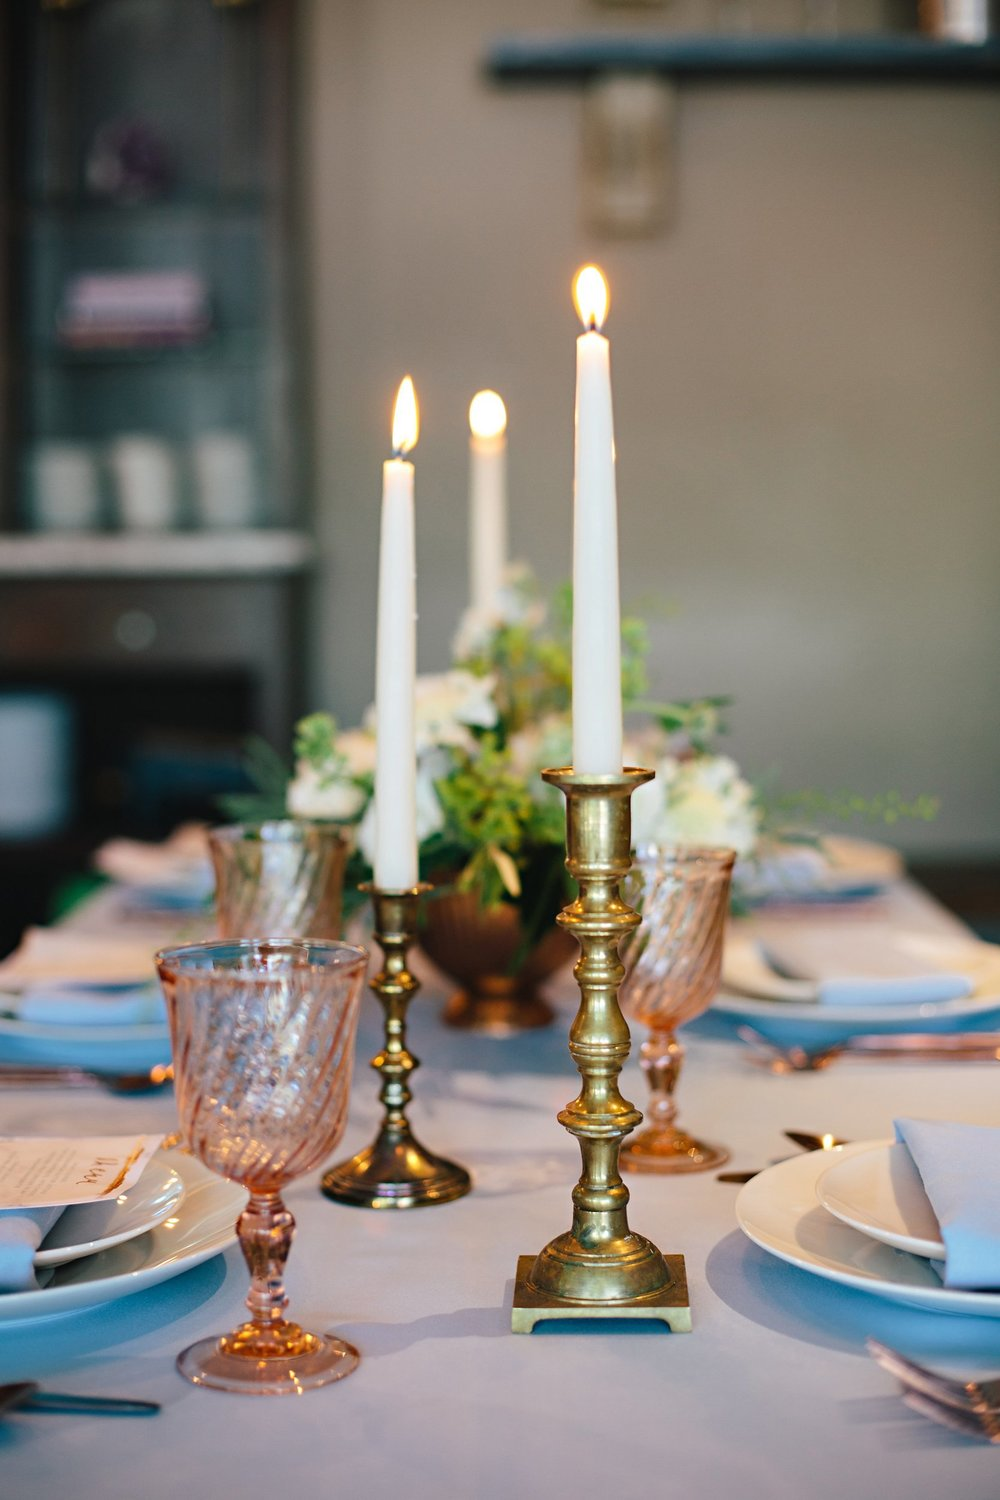 Copy of Summer Garden Wedding: Tabletop Details: Candlelight